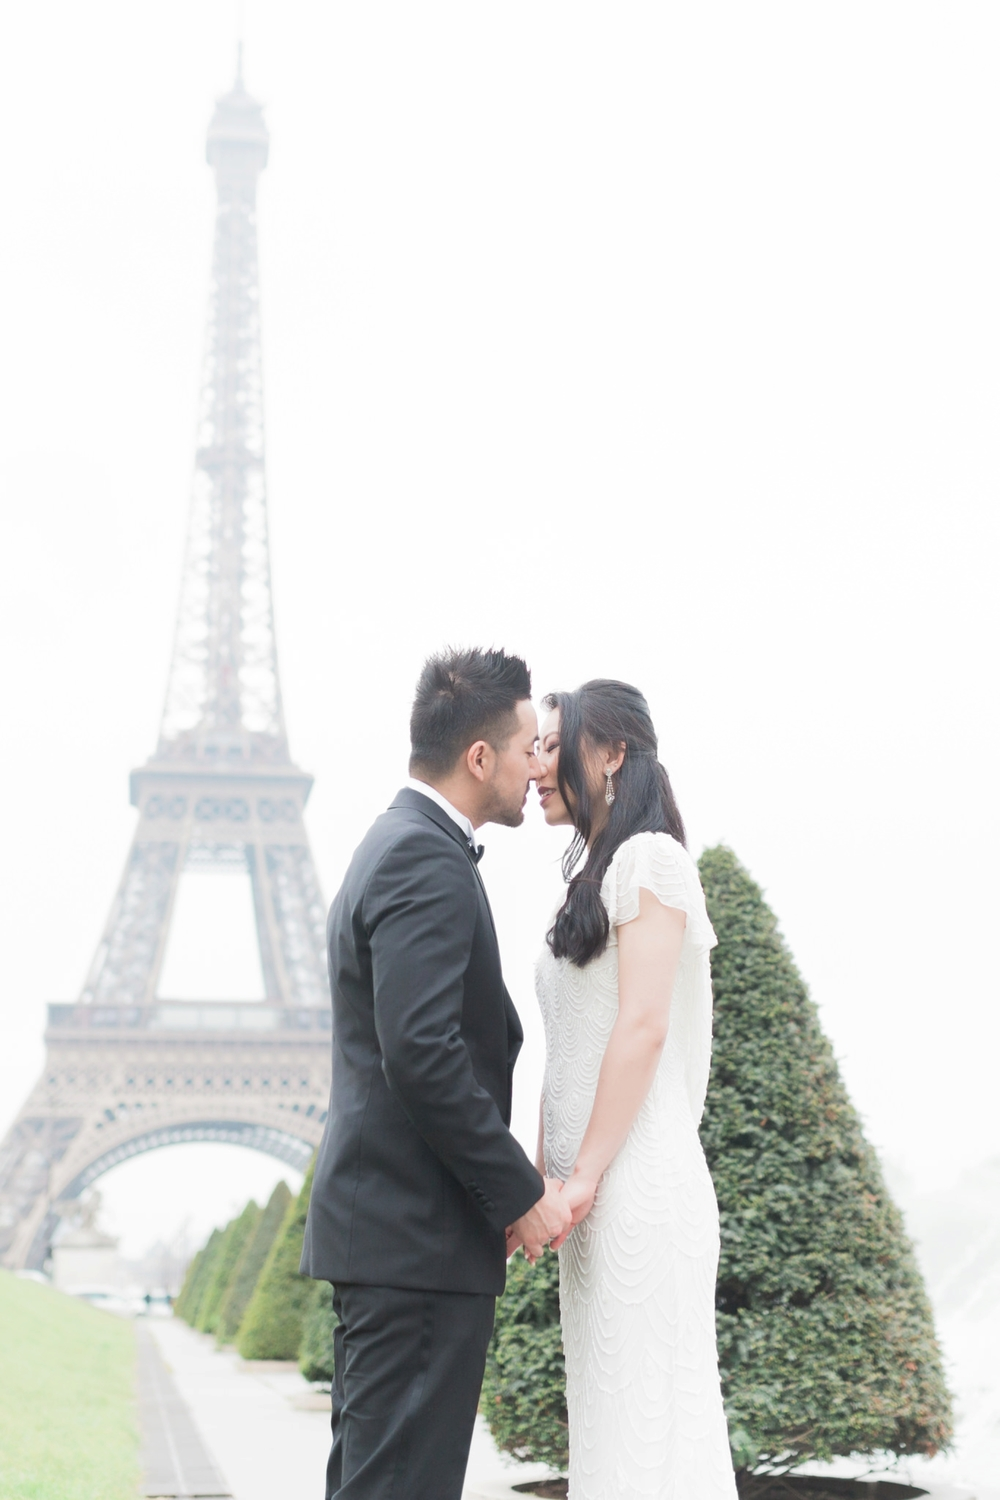 Suzanne_li_photography_paris_engagement_shoot_0037.jpg